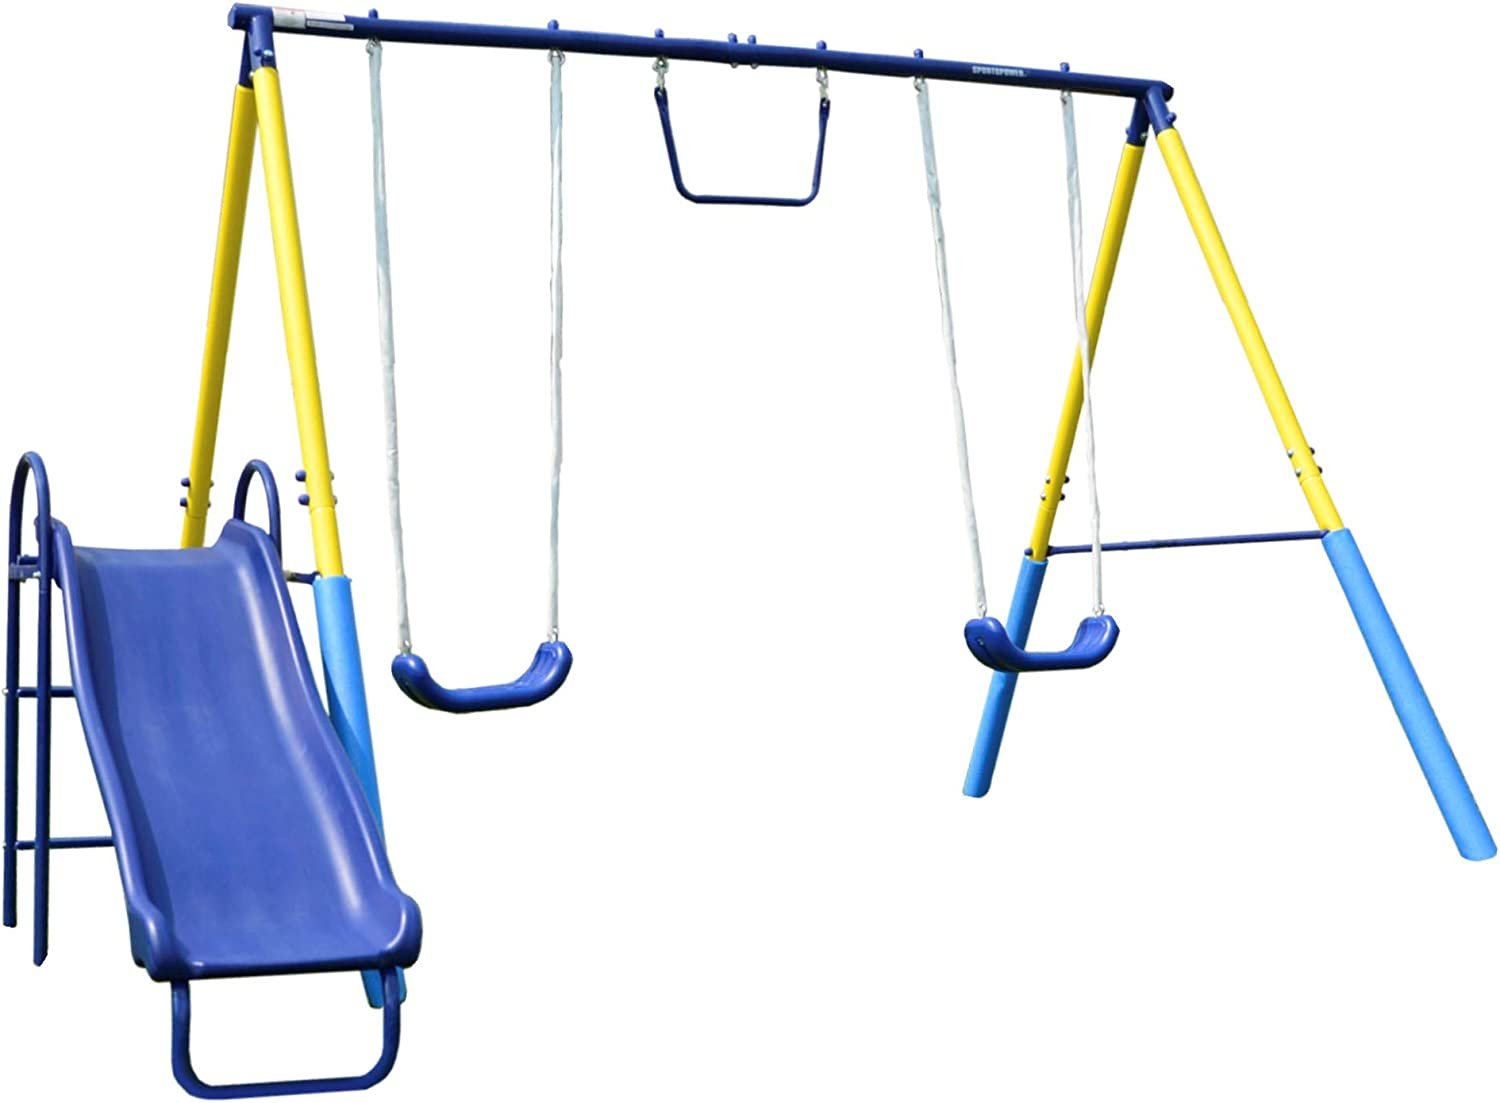 Sportspower My First Metal Swing Set with Slide Green//White